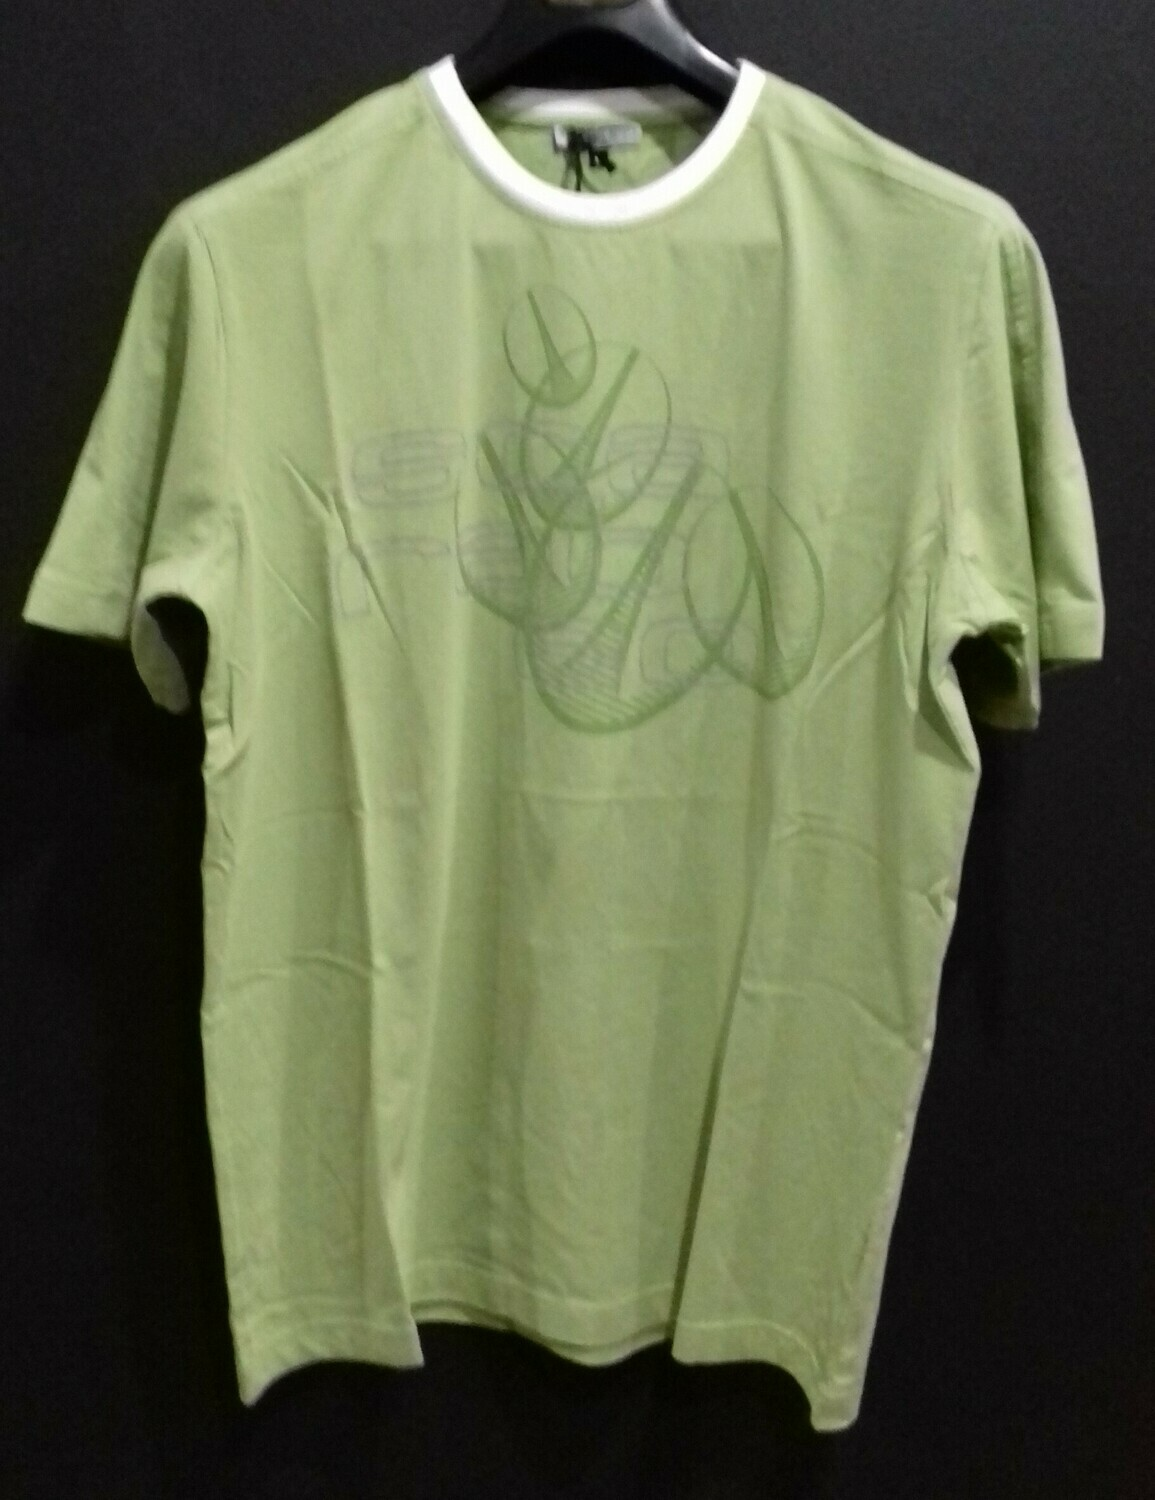 T-SHIRT J COTON MC APR SCARAB GREEN U14E XL